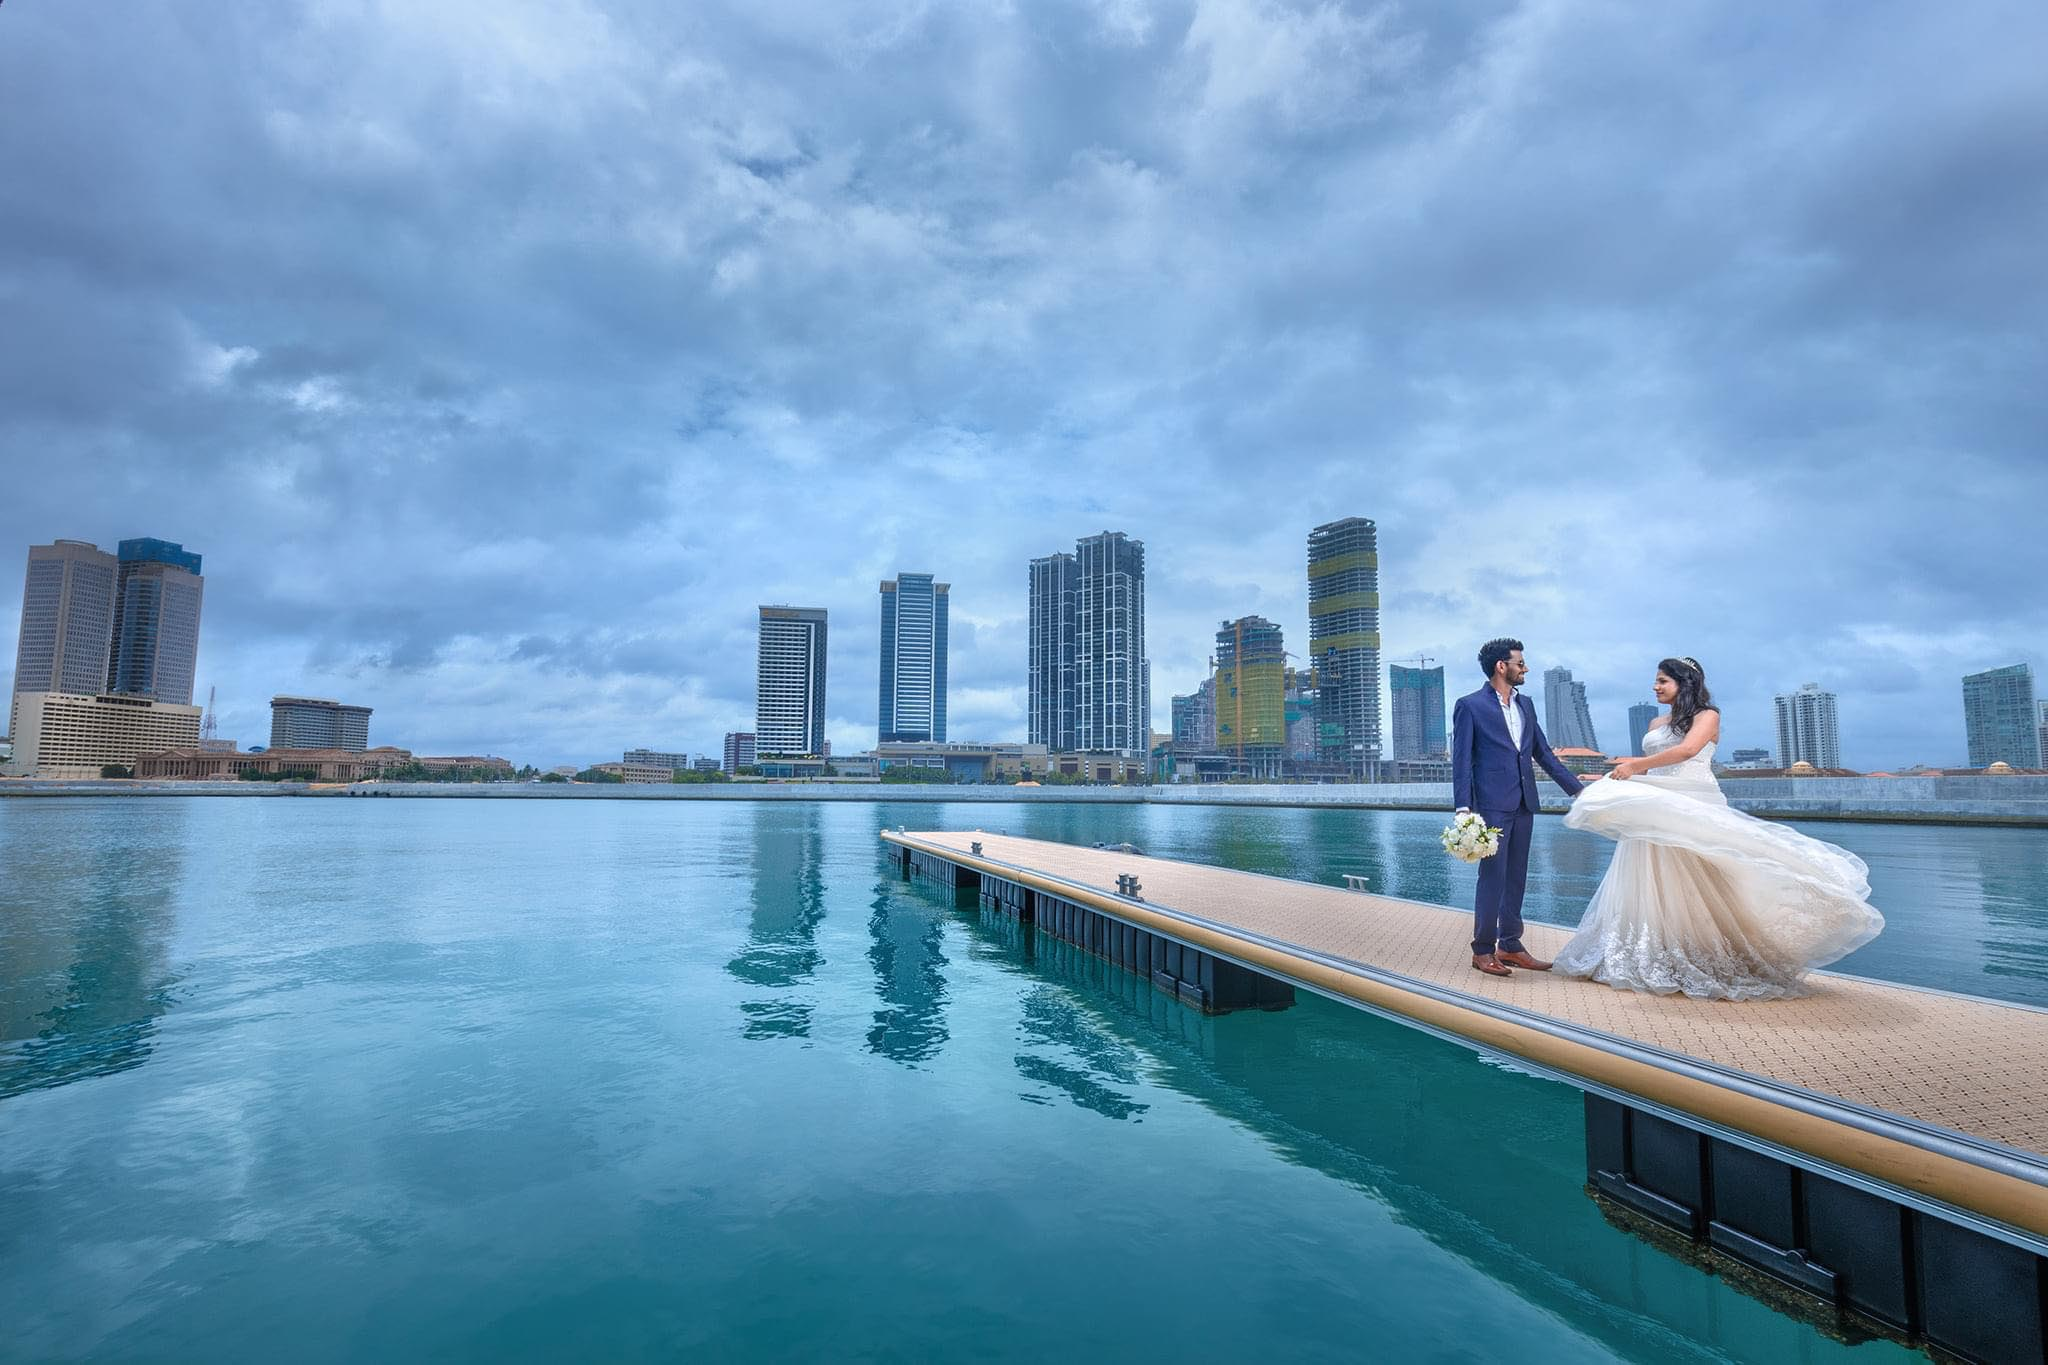 Photoshoots-venues-in-Colombo-Port-City 2